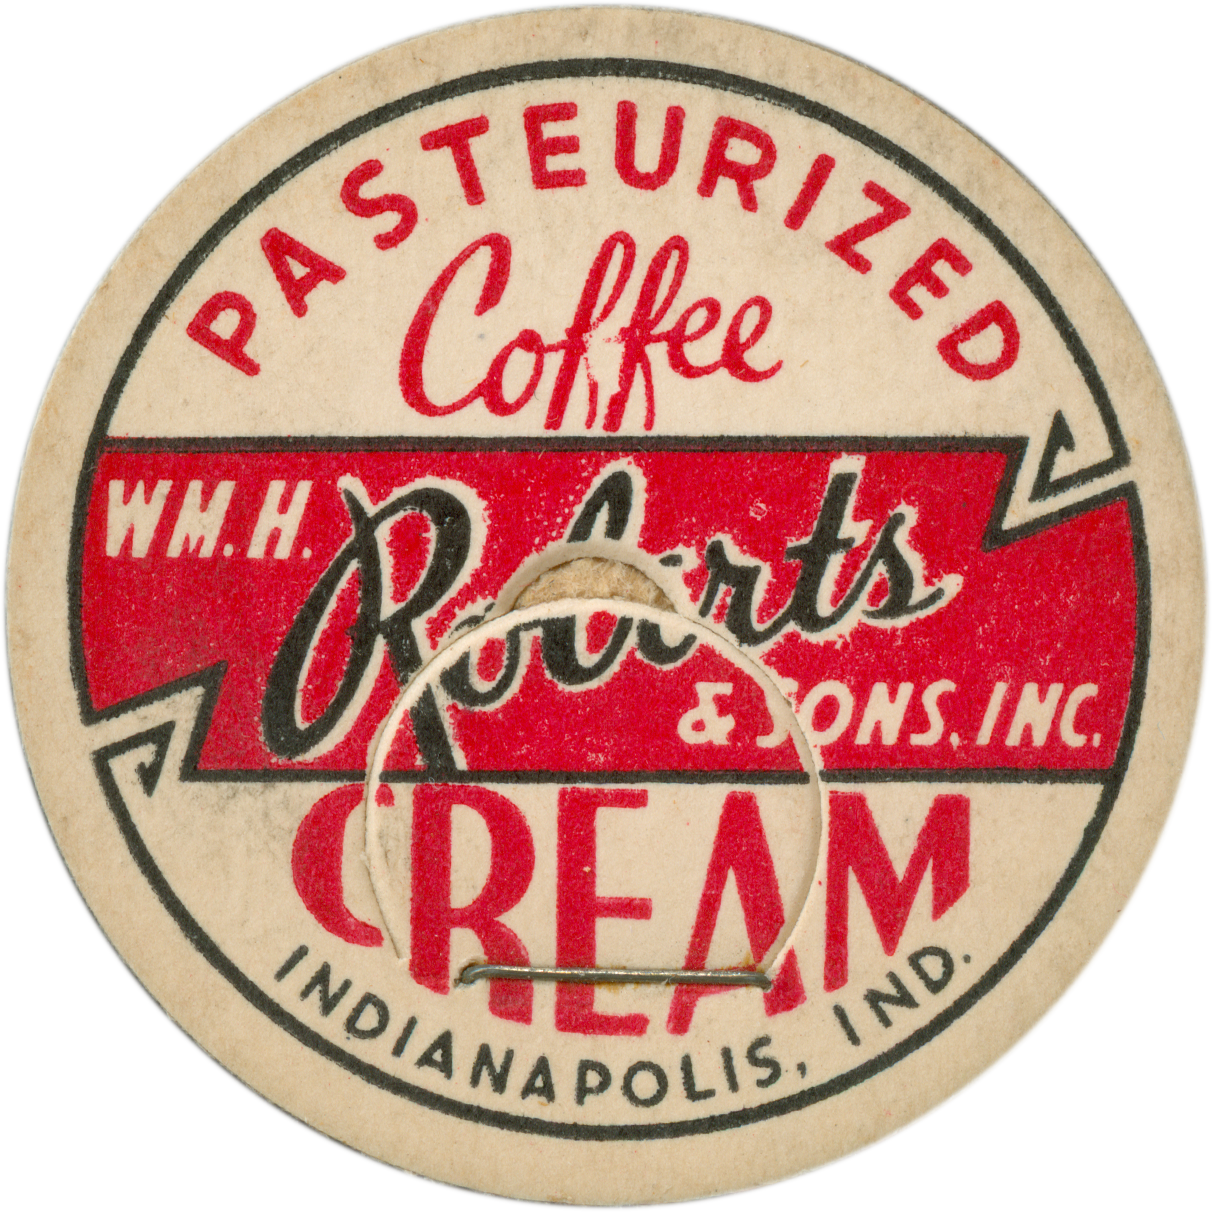 VernacularCircle__0000s_0031_Wm.-H.-Roberts-&-Sons,-Inc---Pasteurized-Coffee-Cream.png